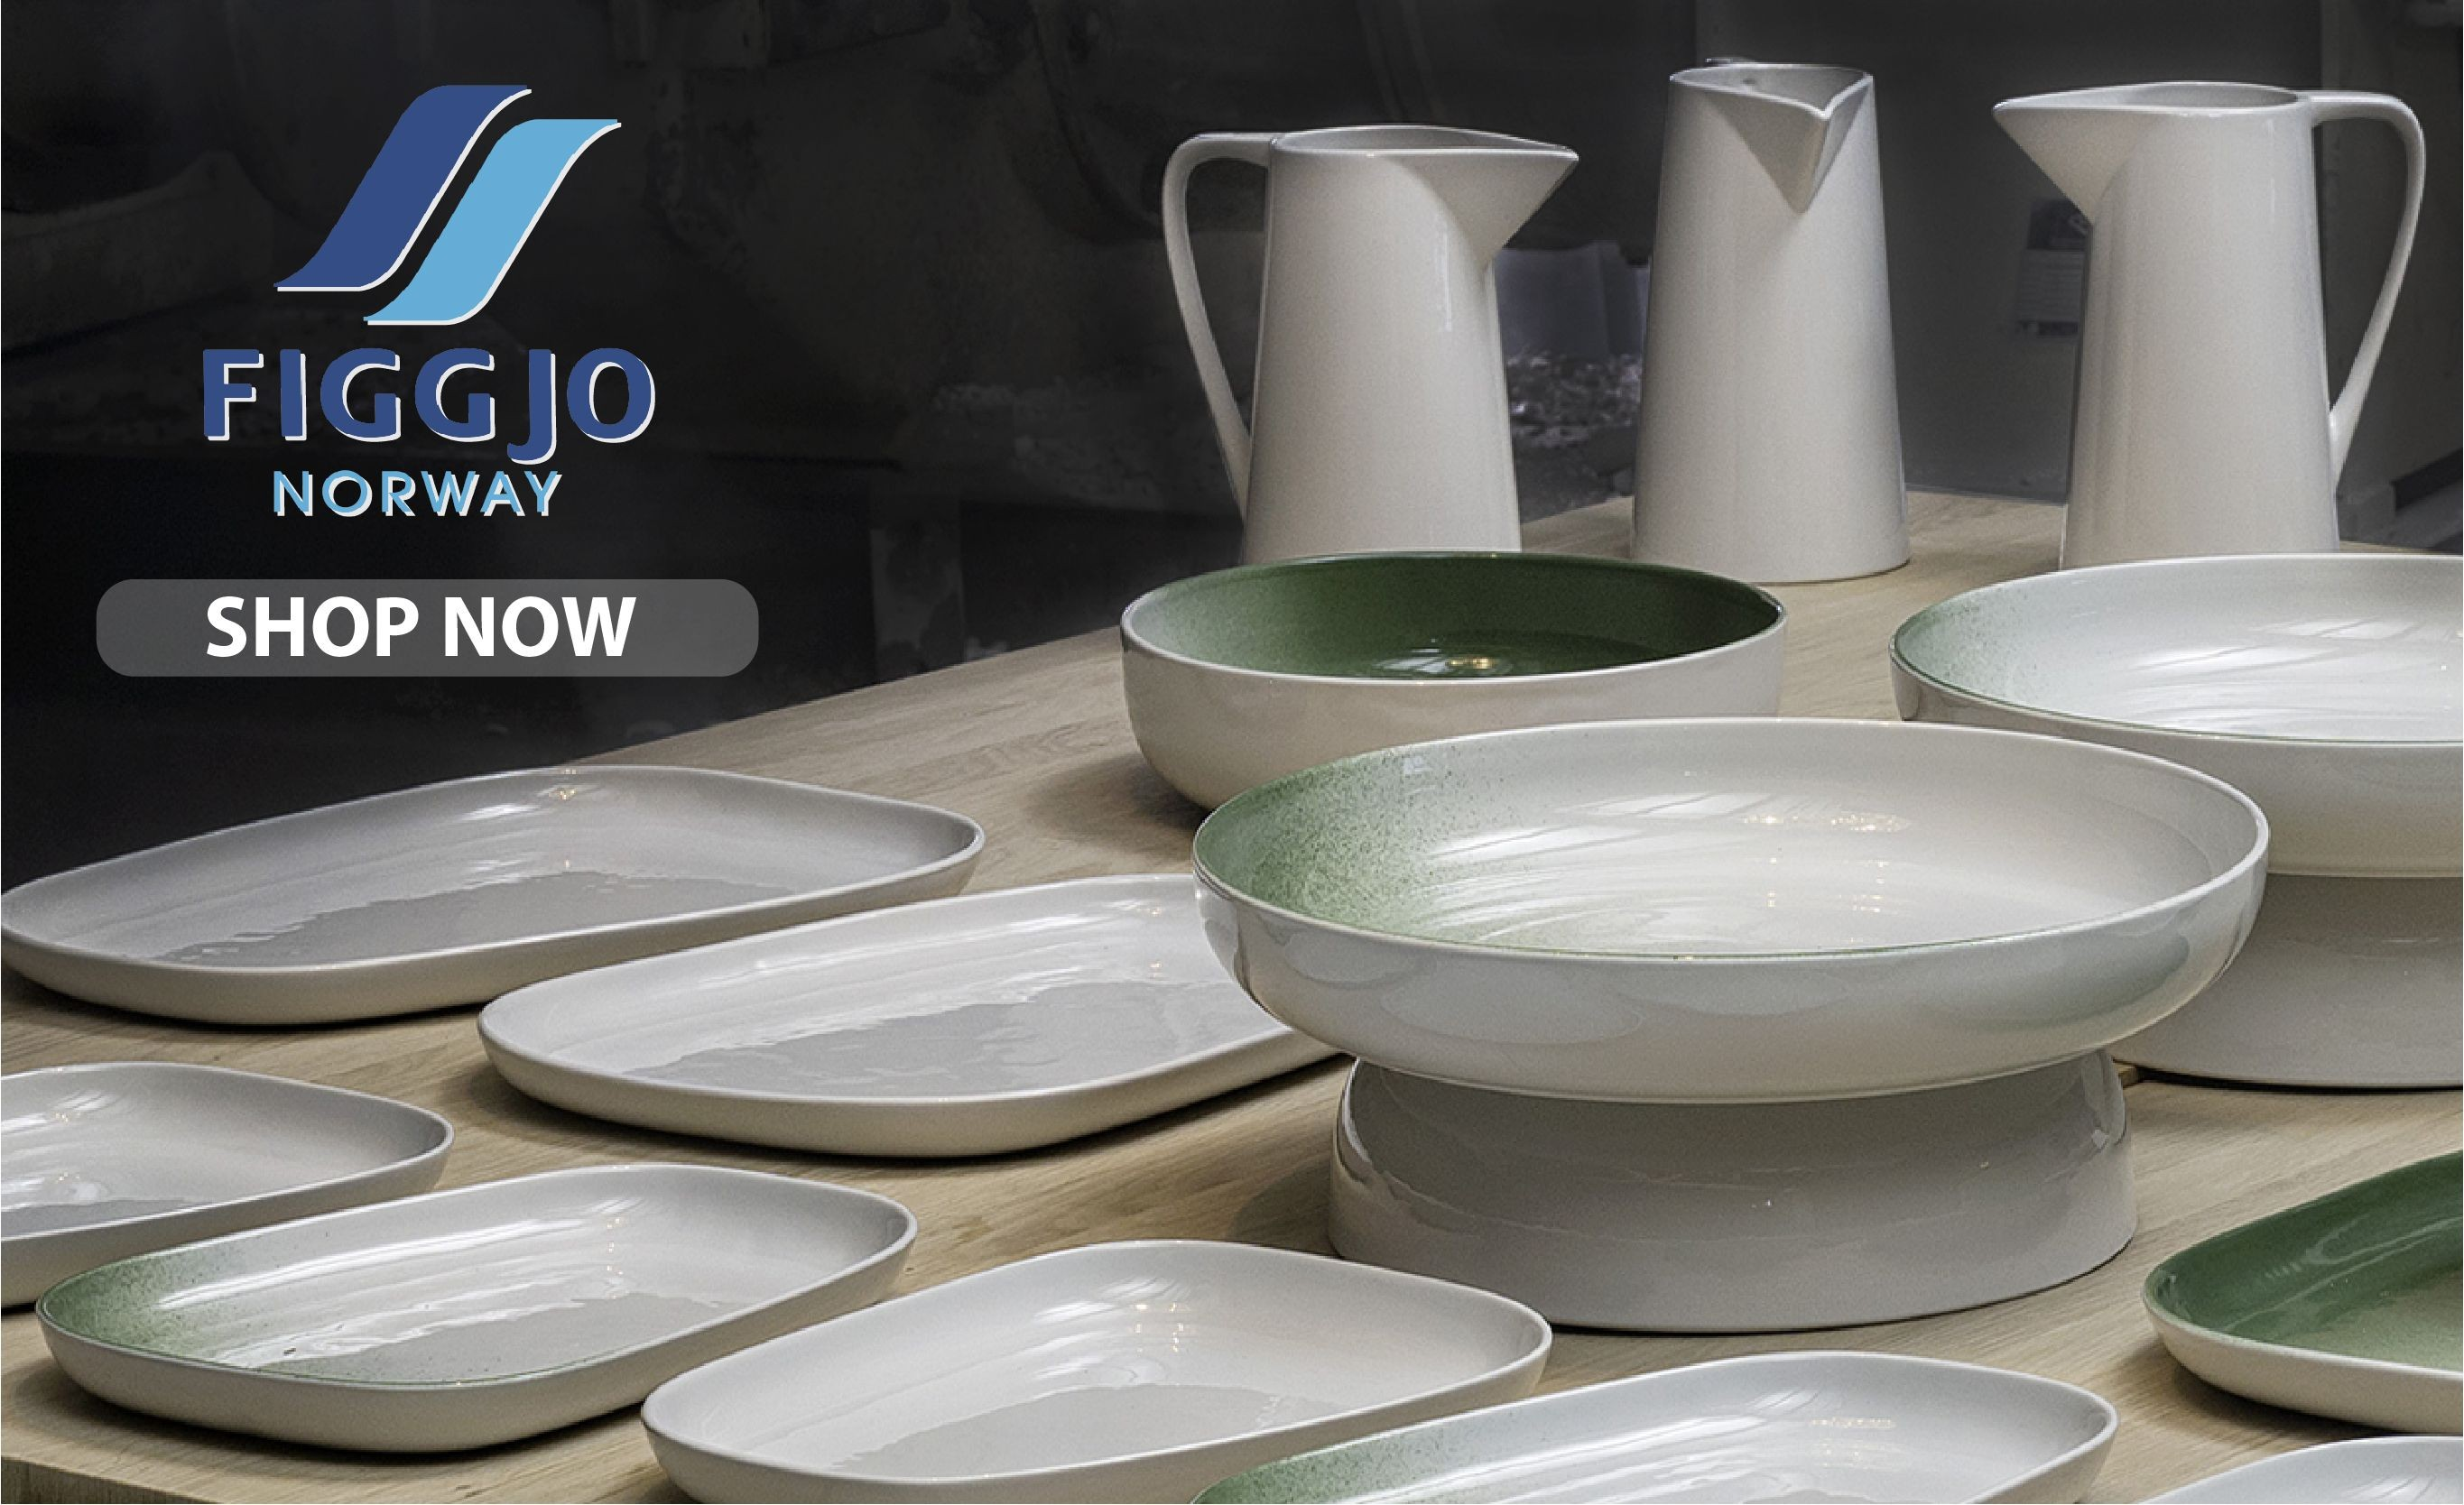 Shop Figgjo's uniquely shaped and simplistic dinnerware, which offers both everday functionality and style.